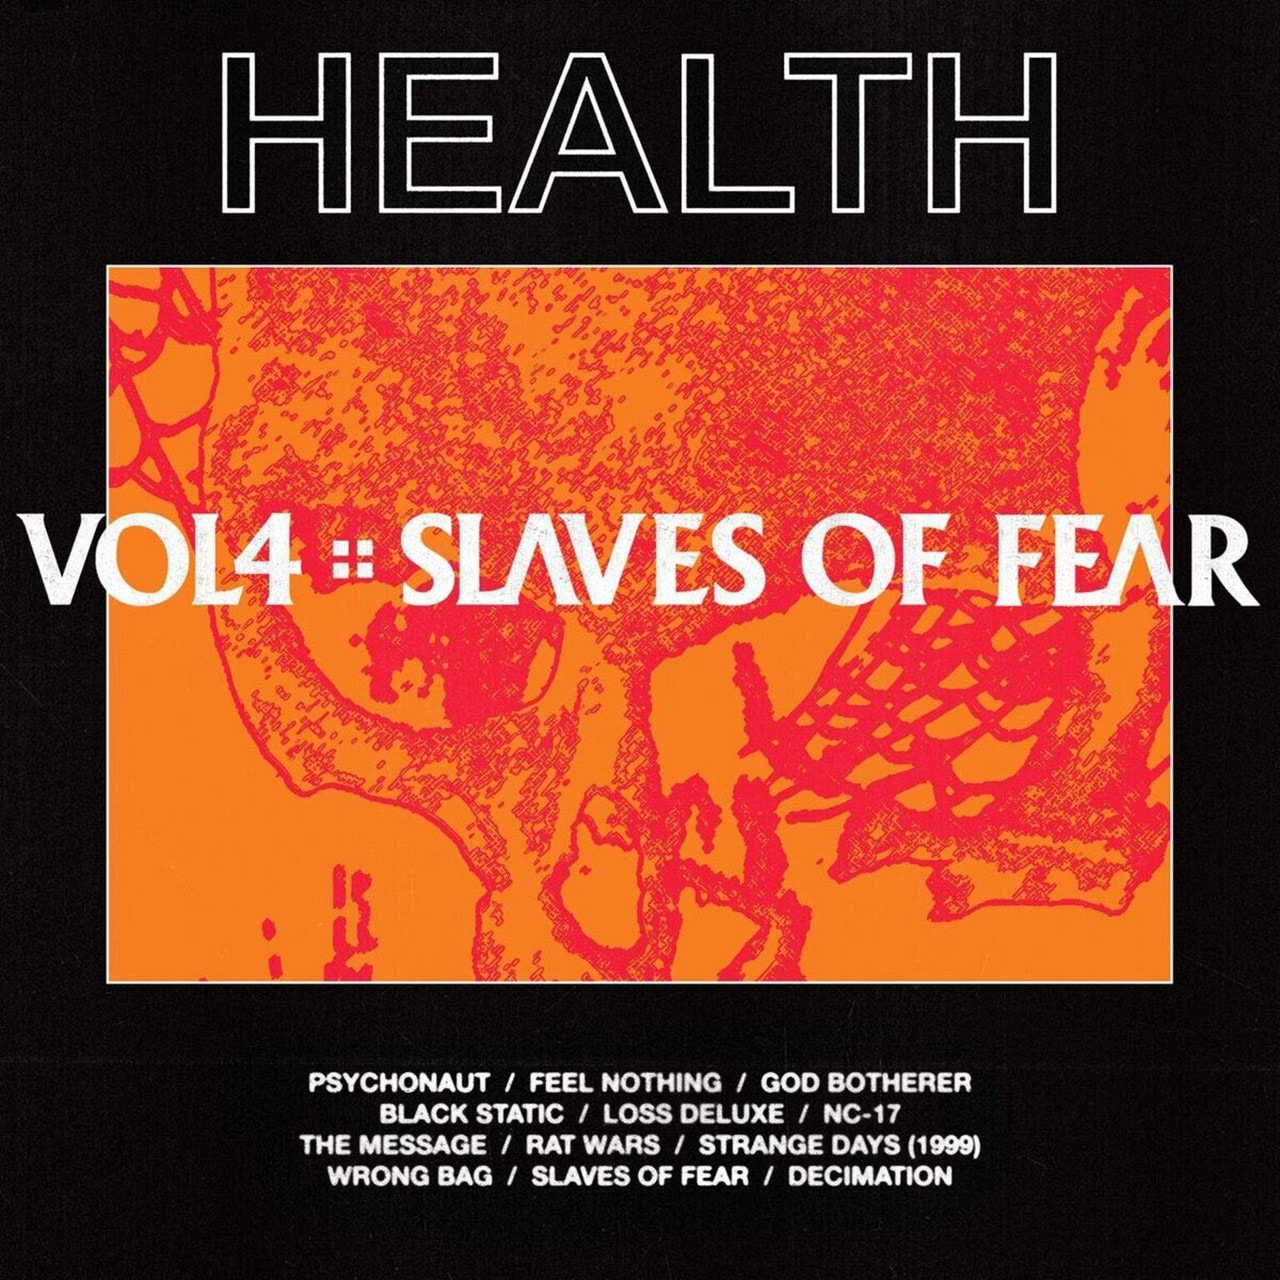 Vol. 4: Slaves of Fear - 1